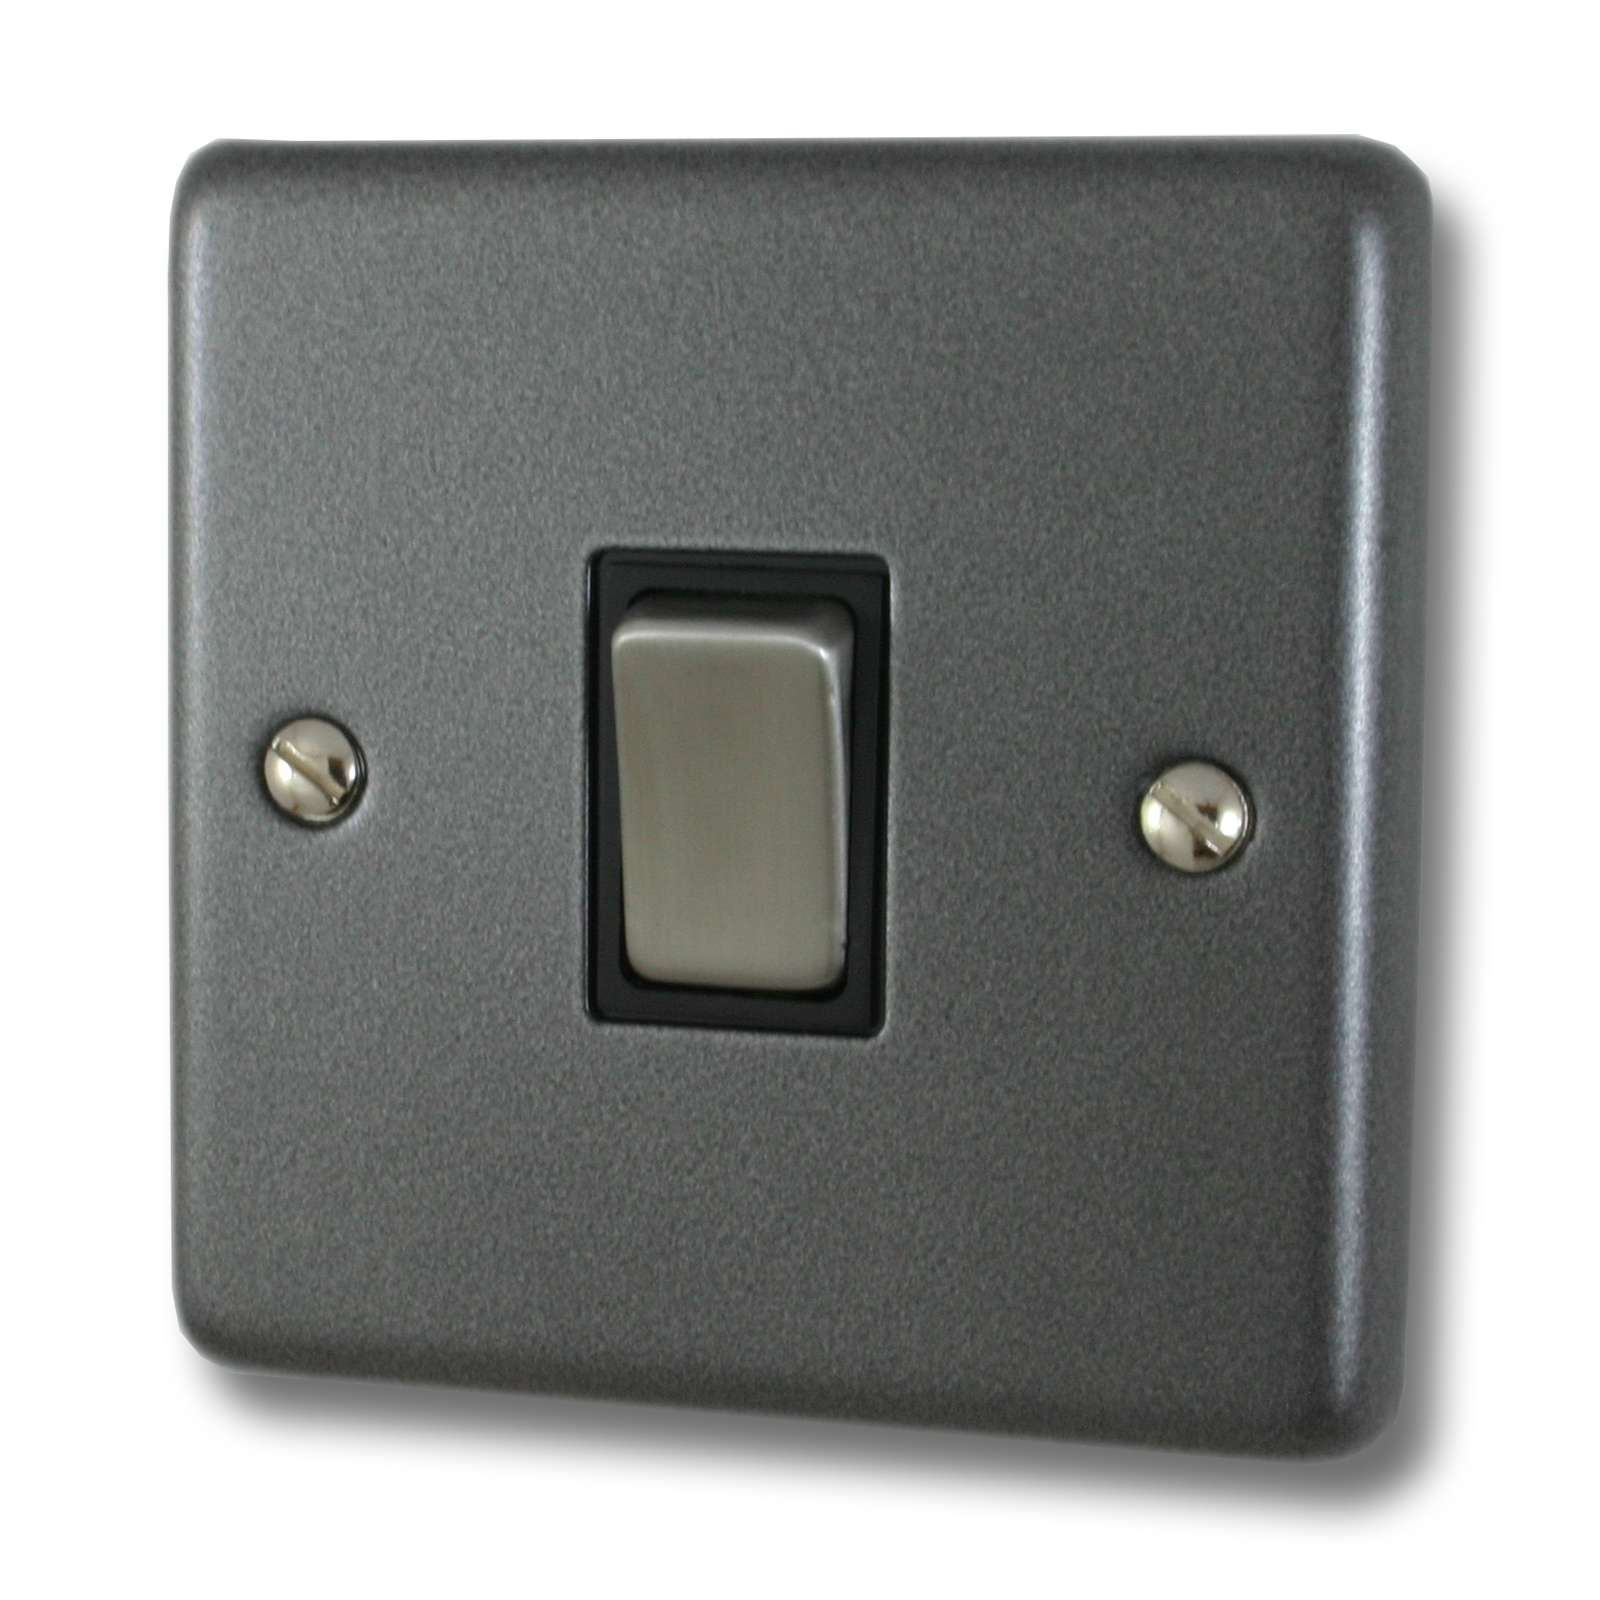 Pewter Sockets and Switches